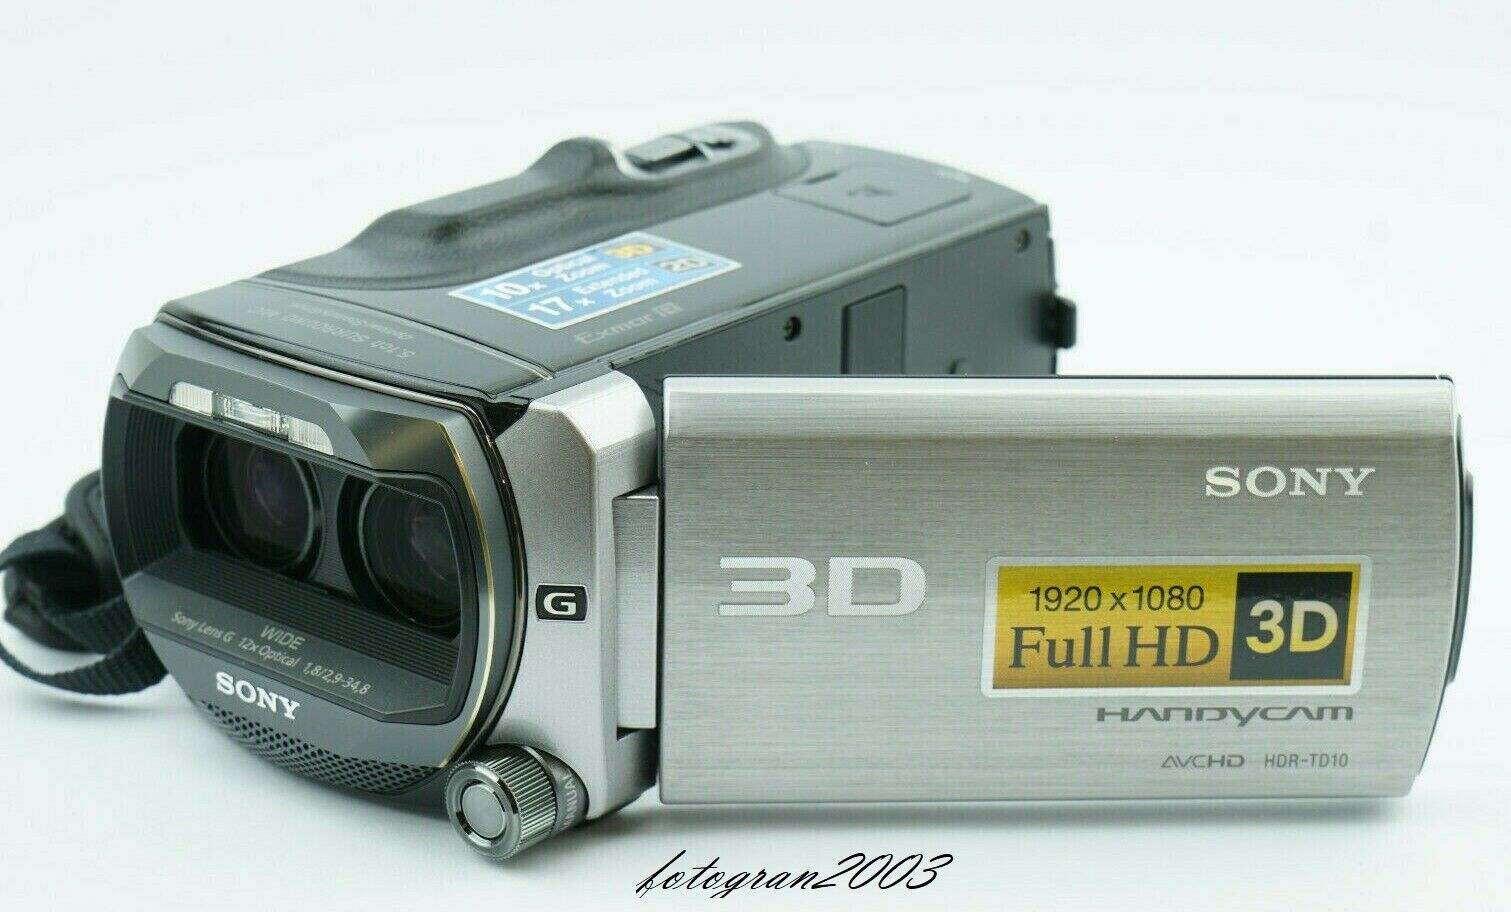 Sony HDR-TD10E 3D Camcorder Handycam +3,5